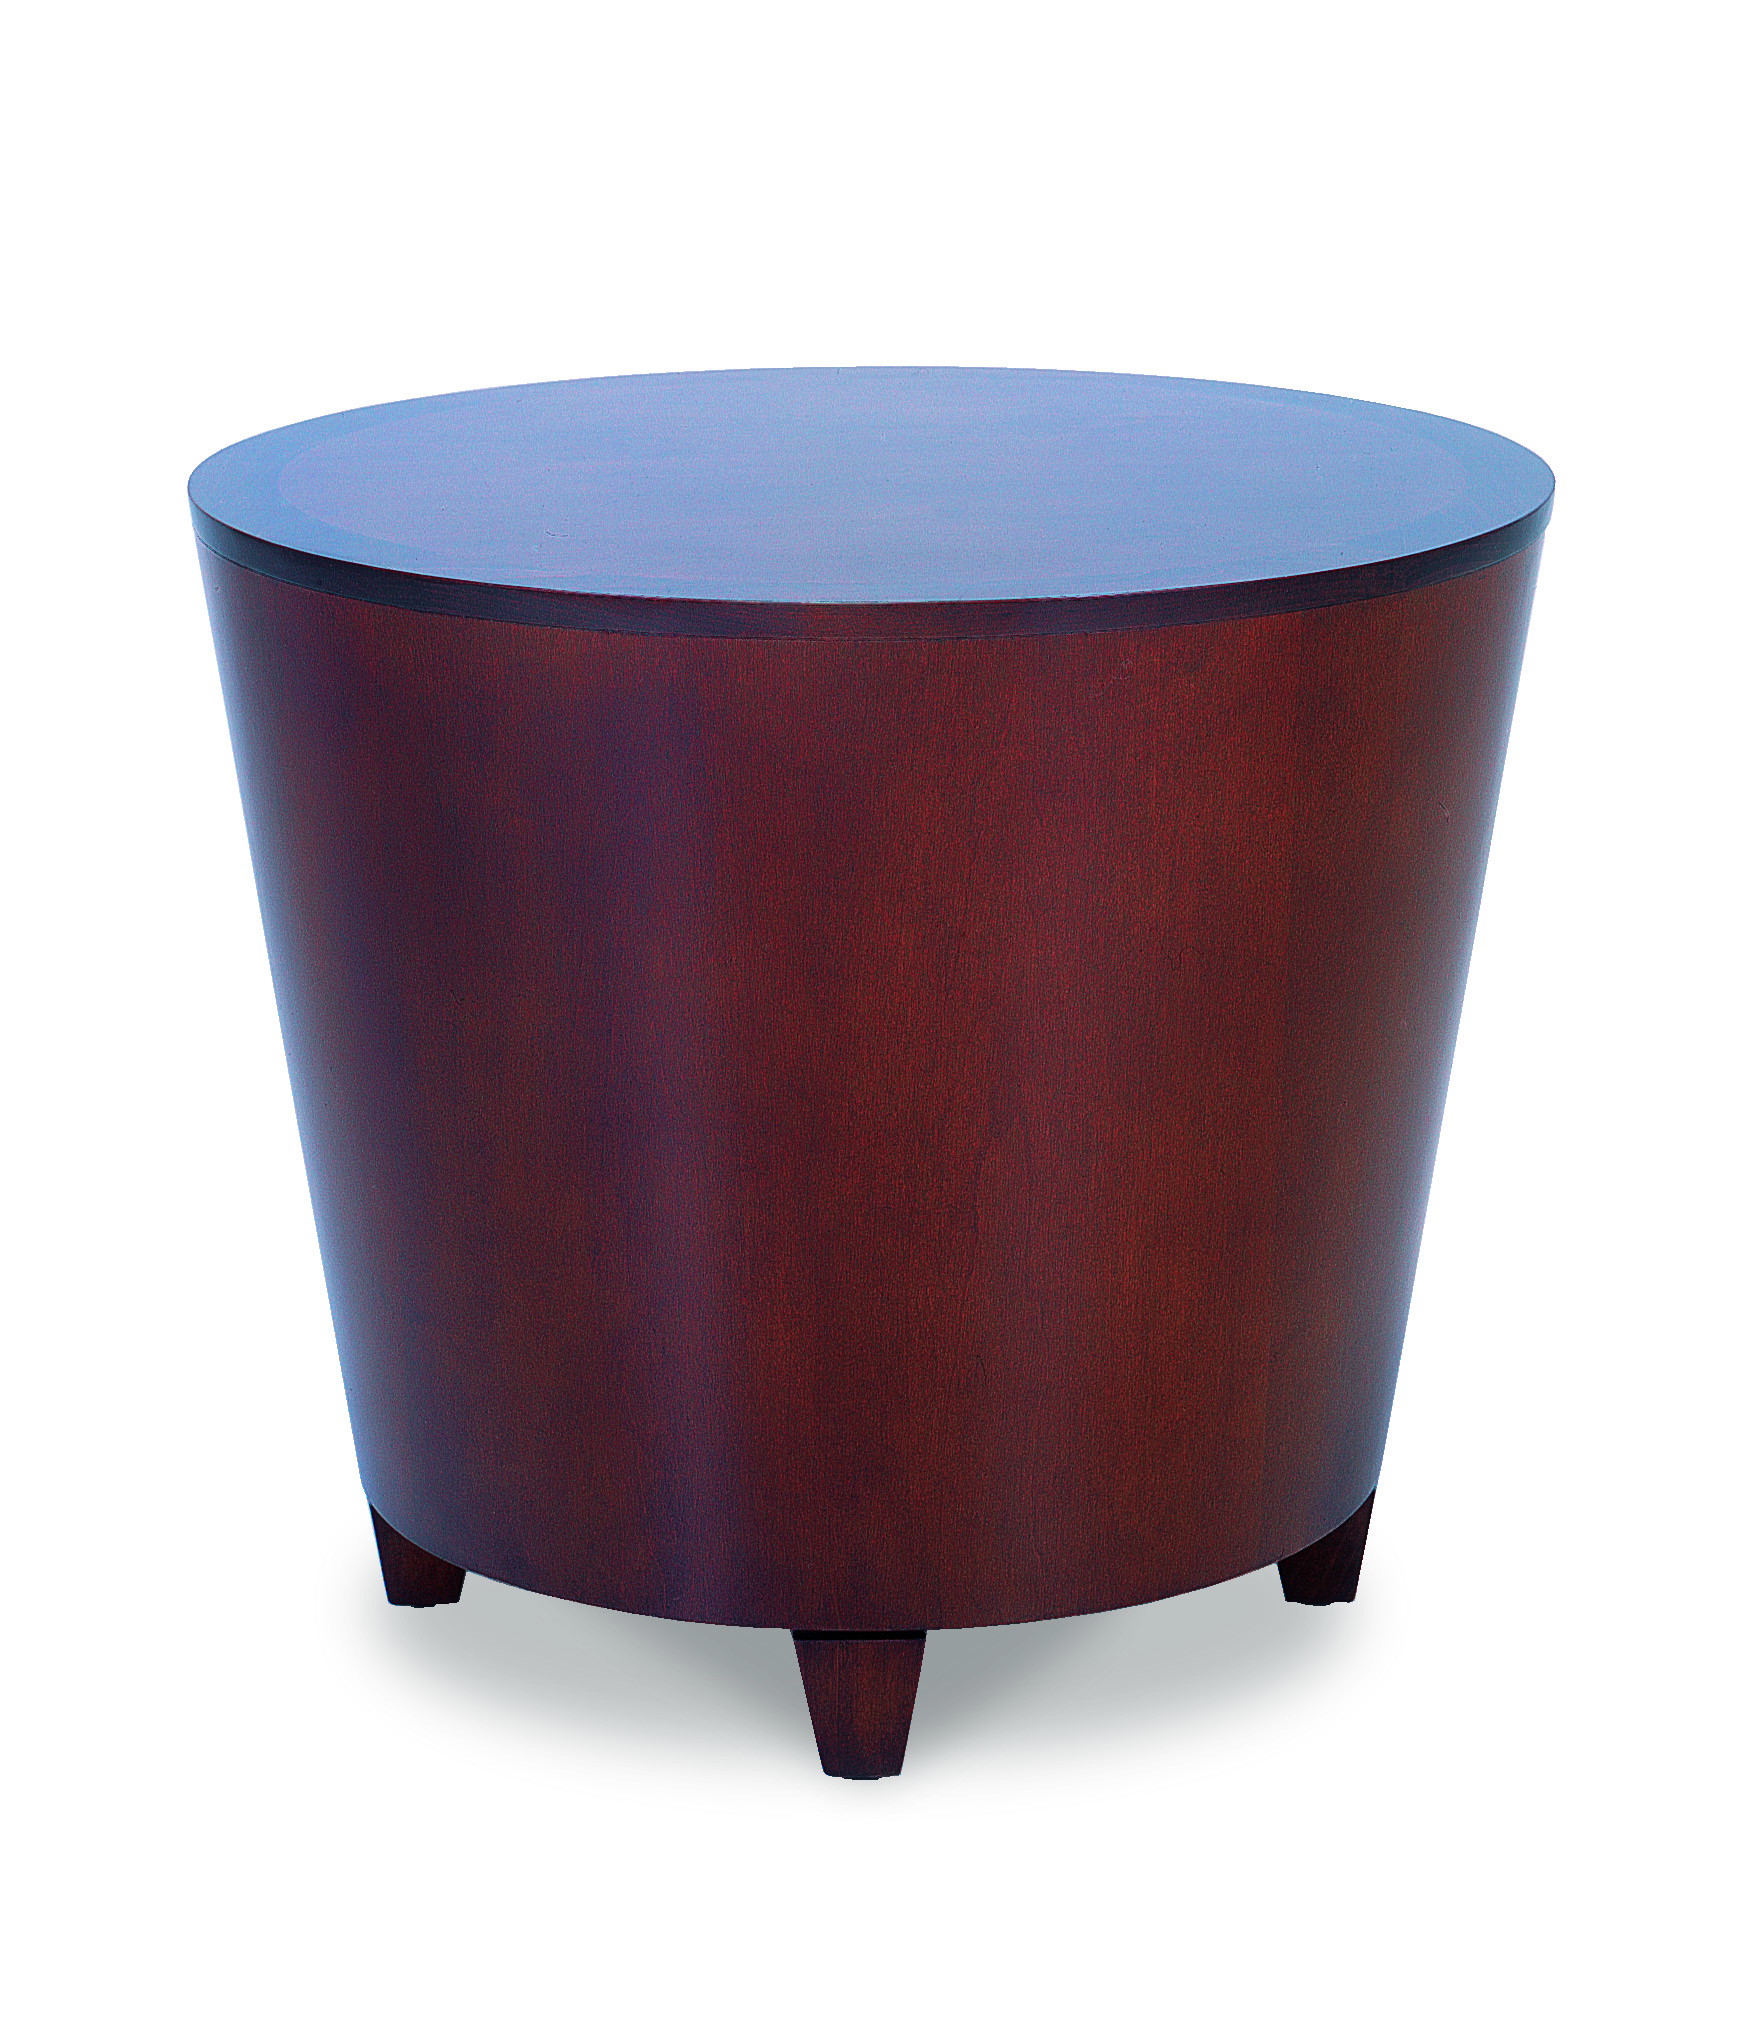 Fly tables series david edward for Table 52 2016